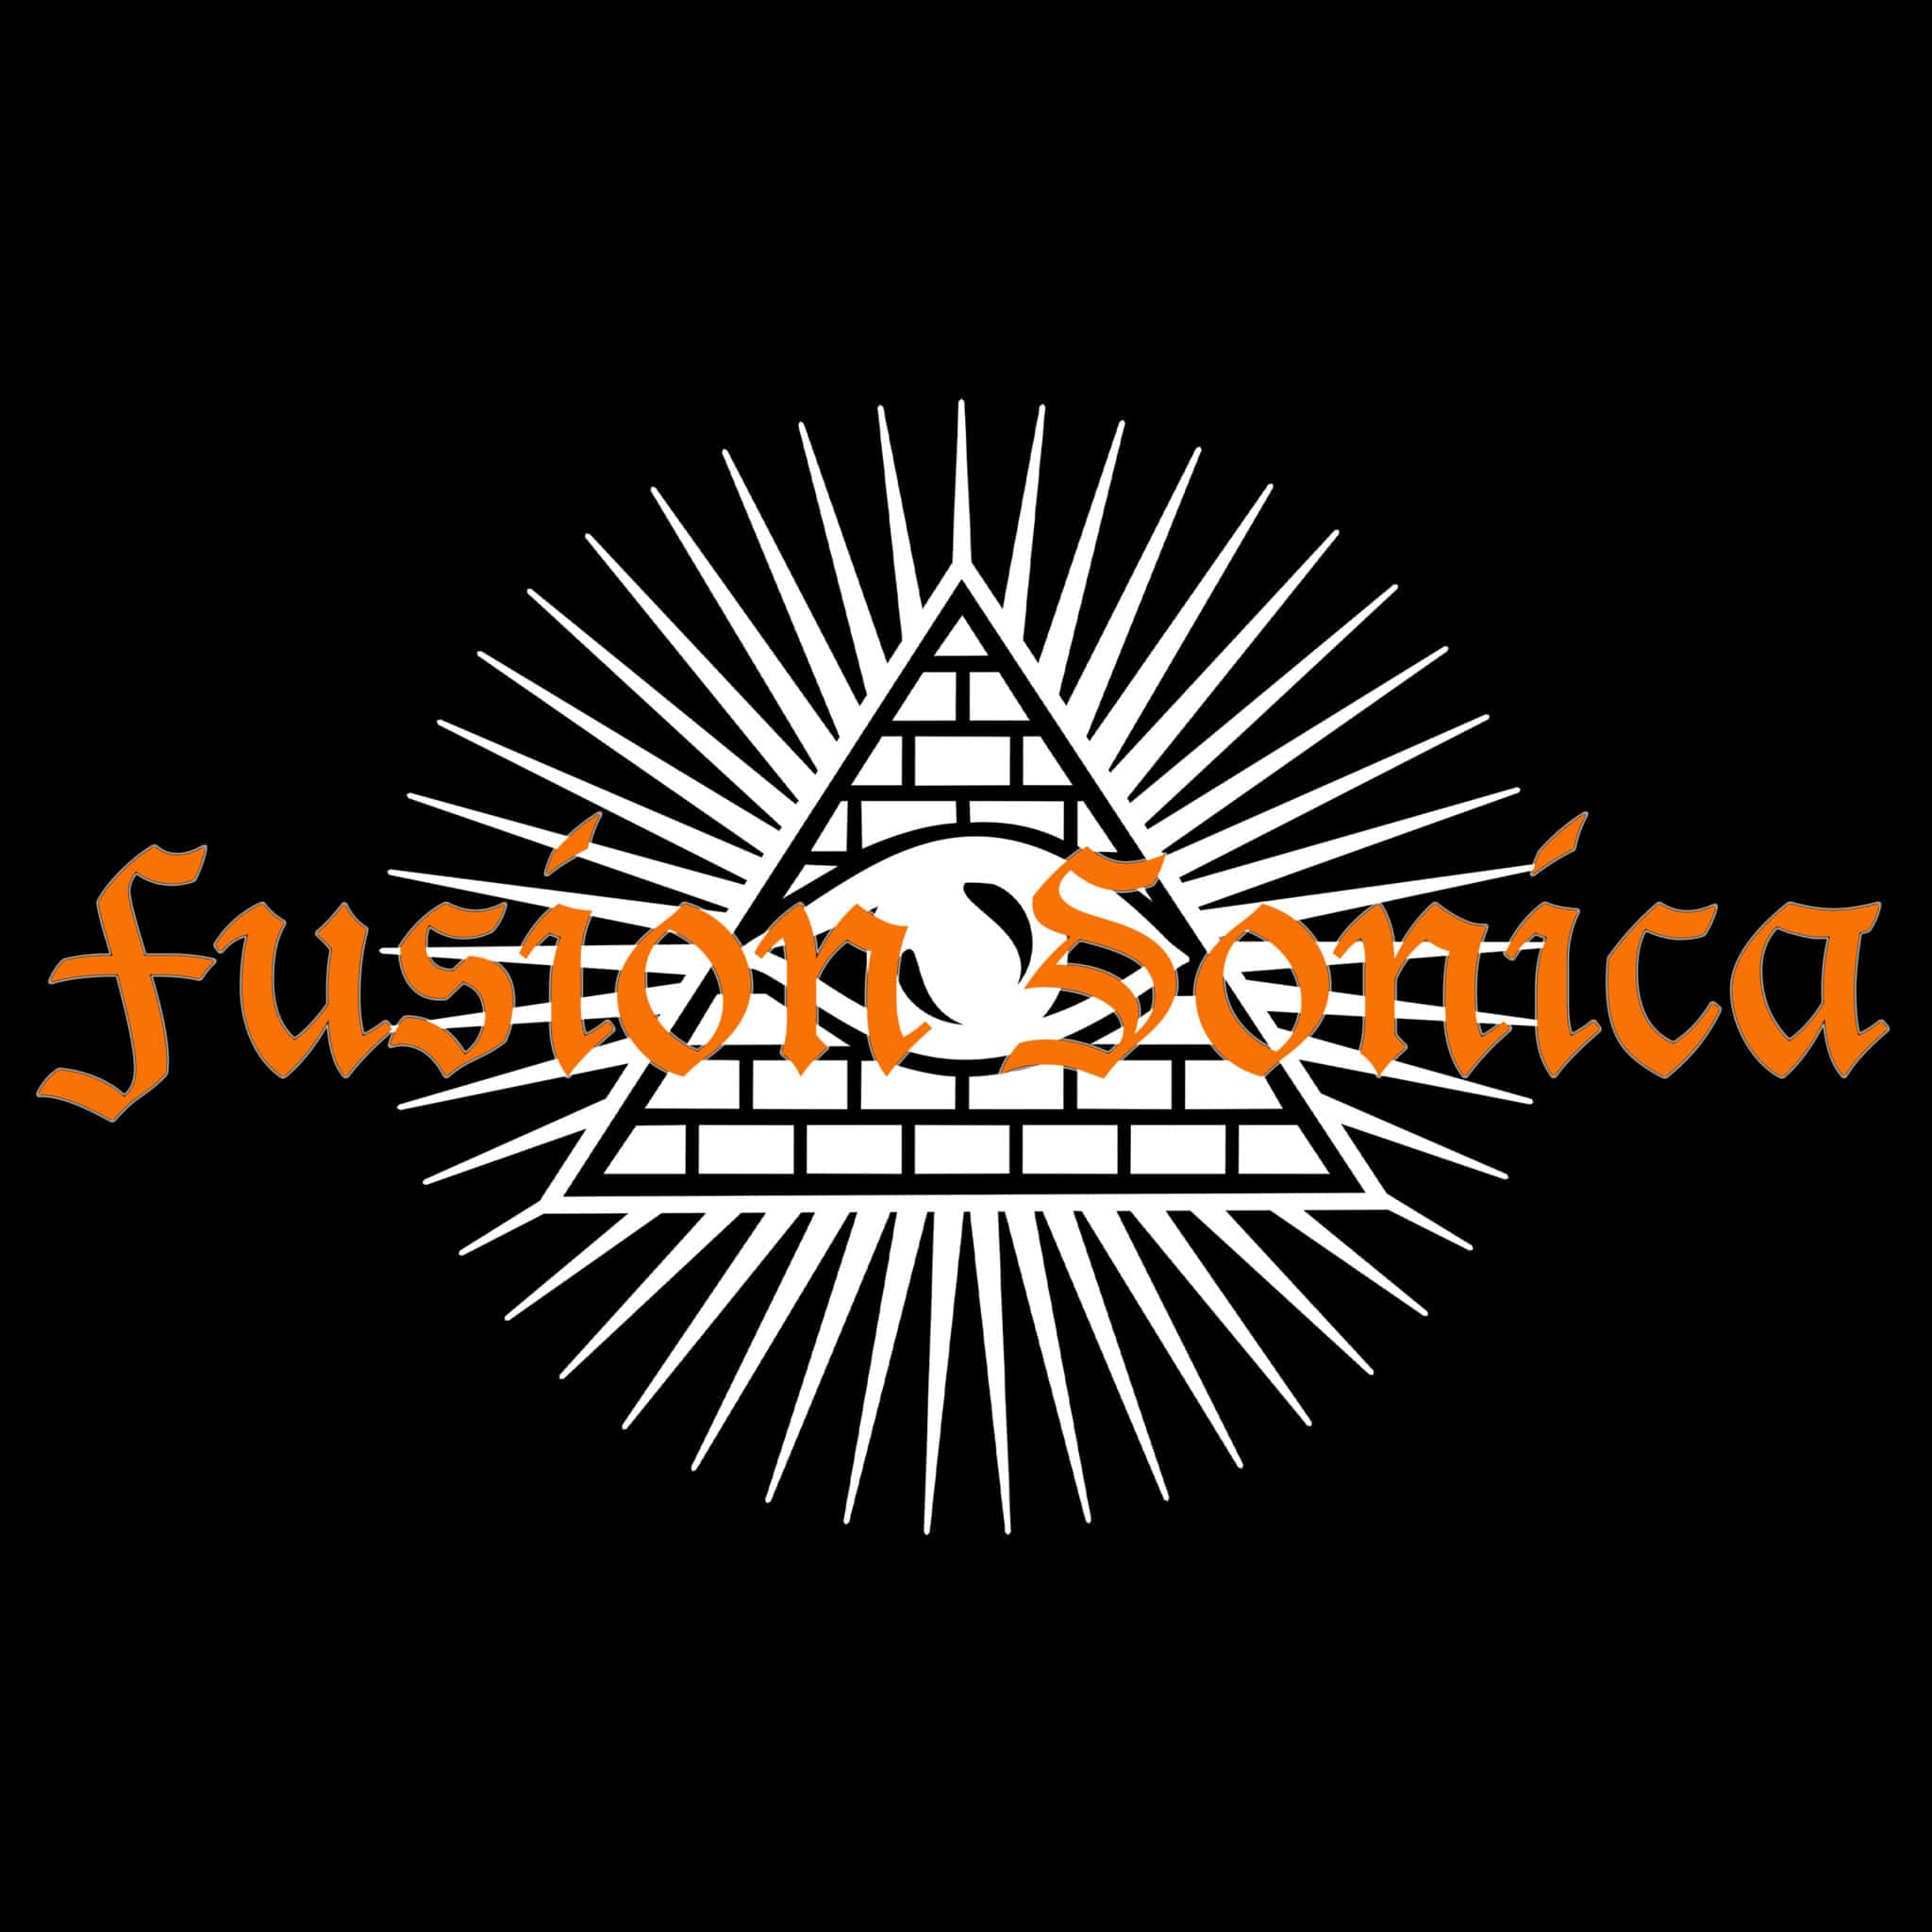 Fusion Sonica